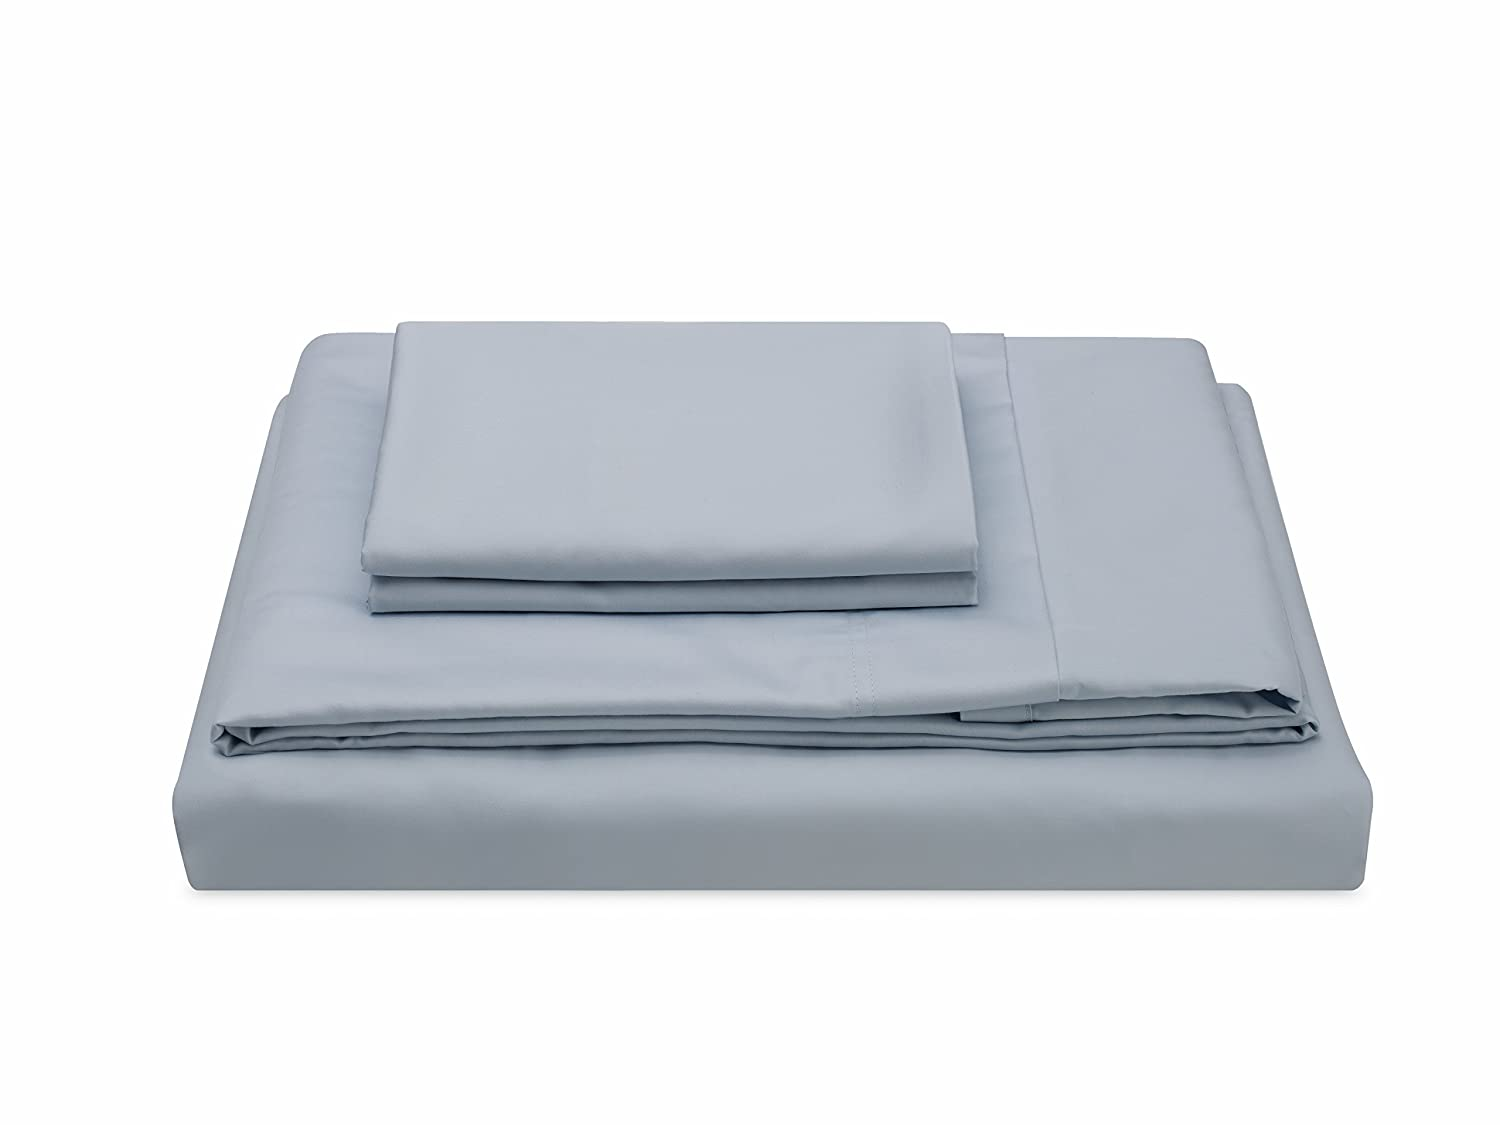 Molecule Bed Sheets with Air-Engineered Cooling Recovery, Tencel/Cotton Blend